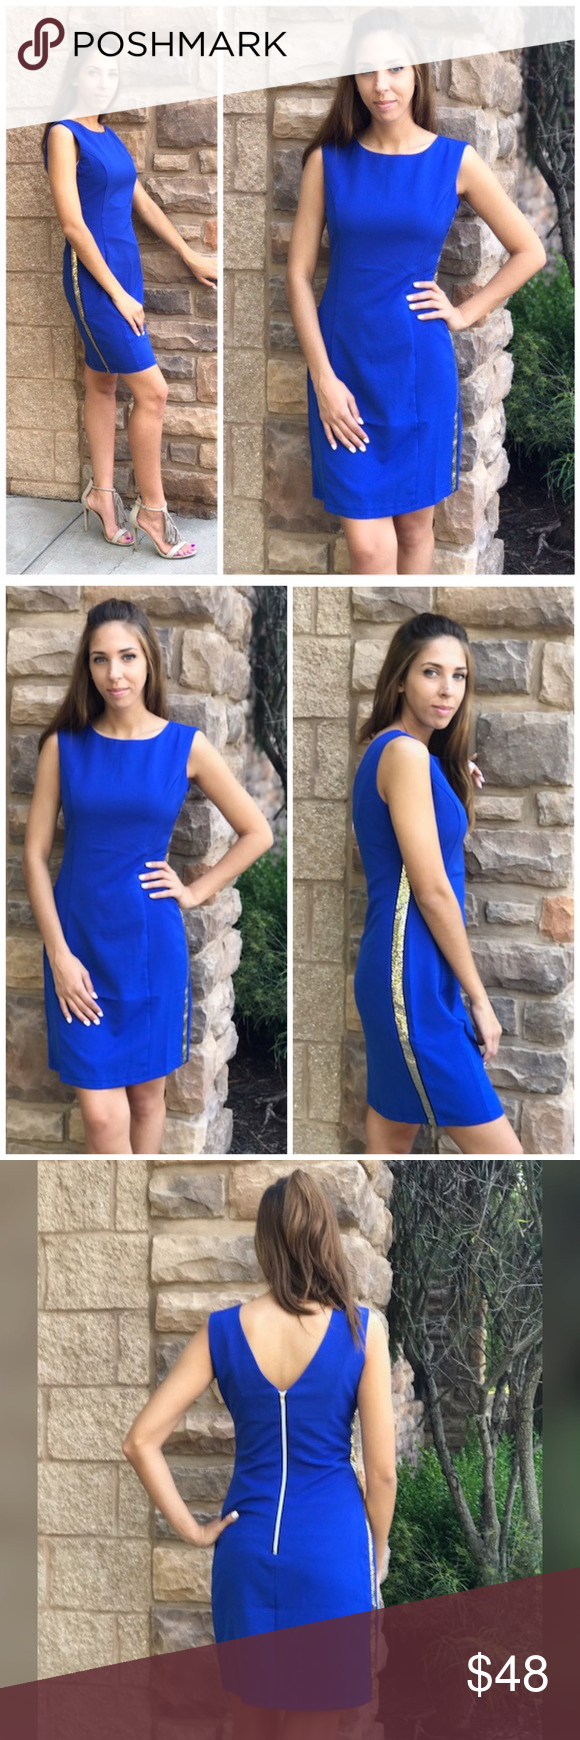 Royal blue dress for wedding guest  Royal Blue Slip Dress The perfect classy wedding guest or career